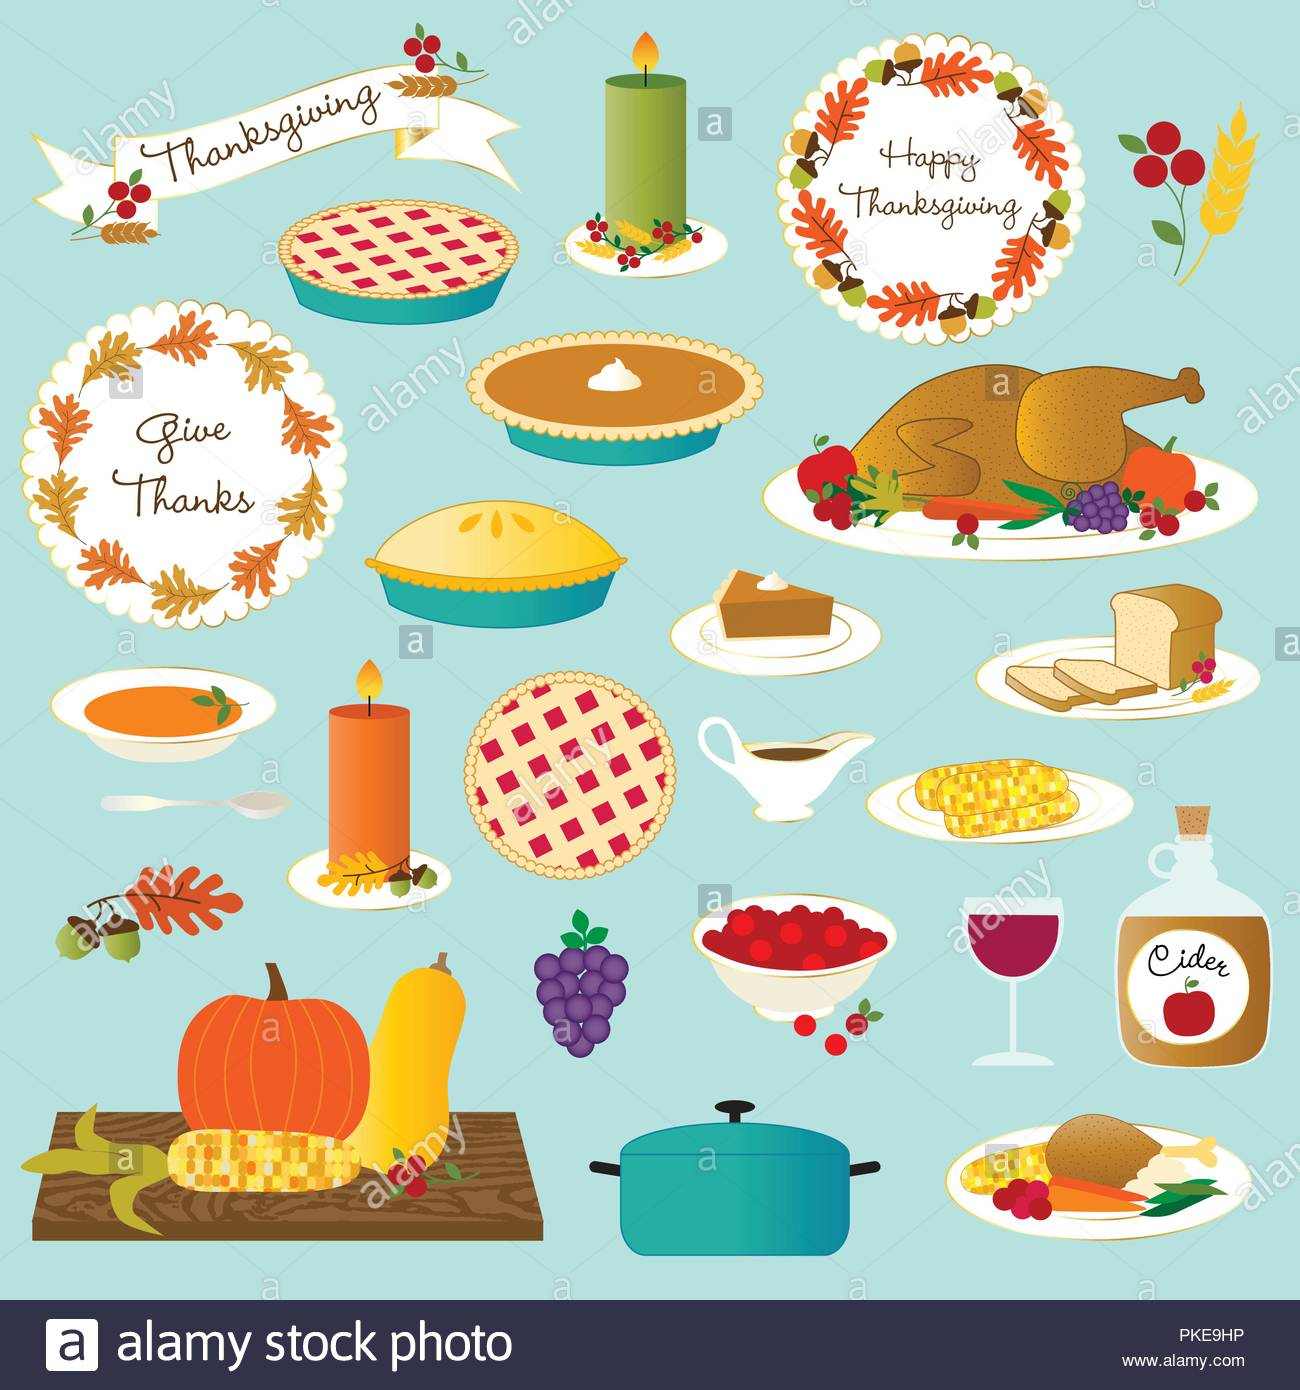 thanksgiving traditional feast foods vector clipart Stock Vector Art.